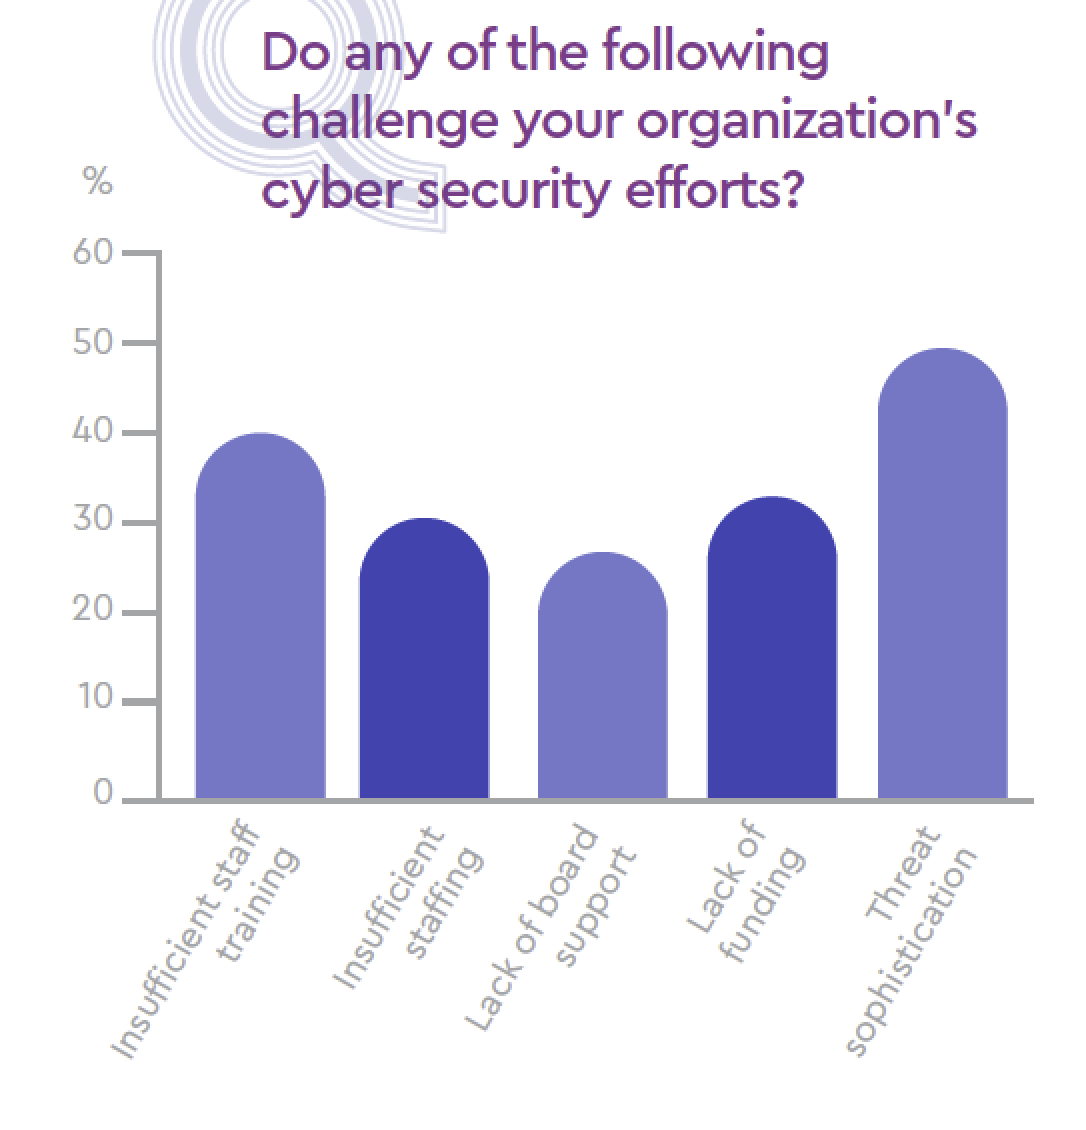 Do any of the following challenge your organization's cyber security efforts?